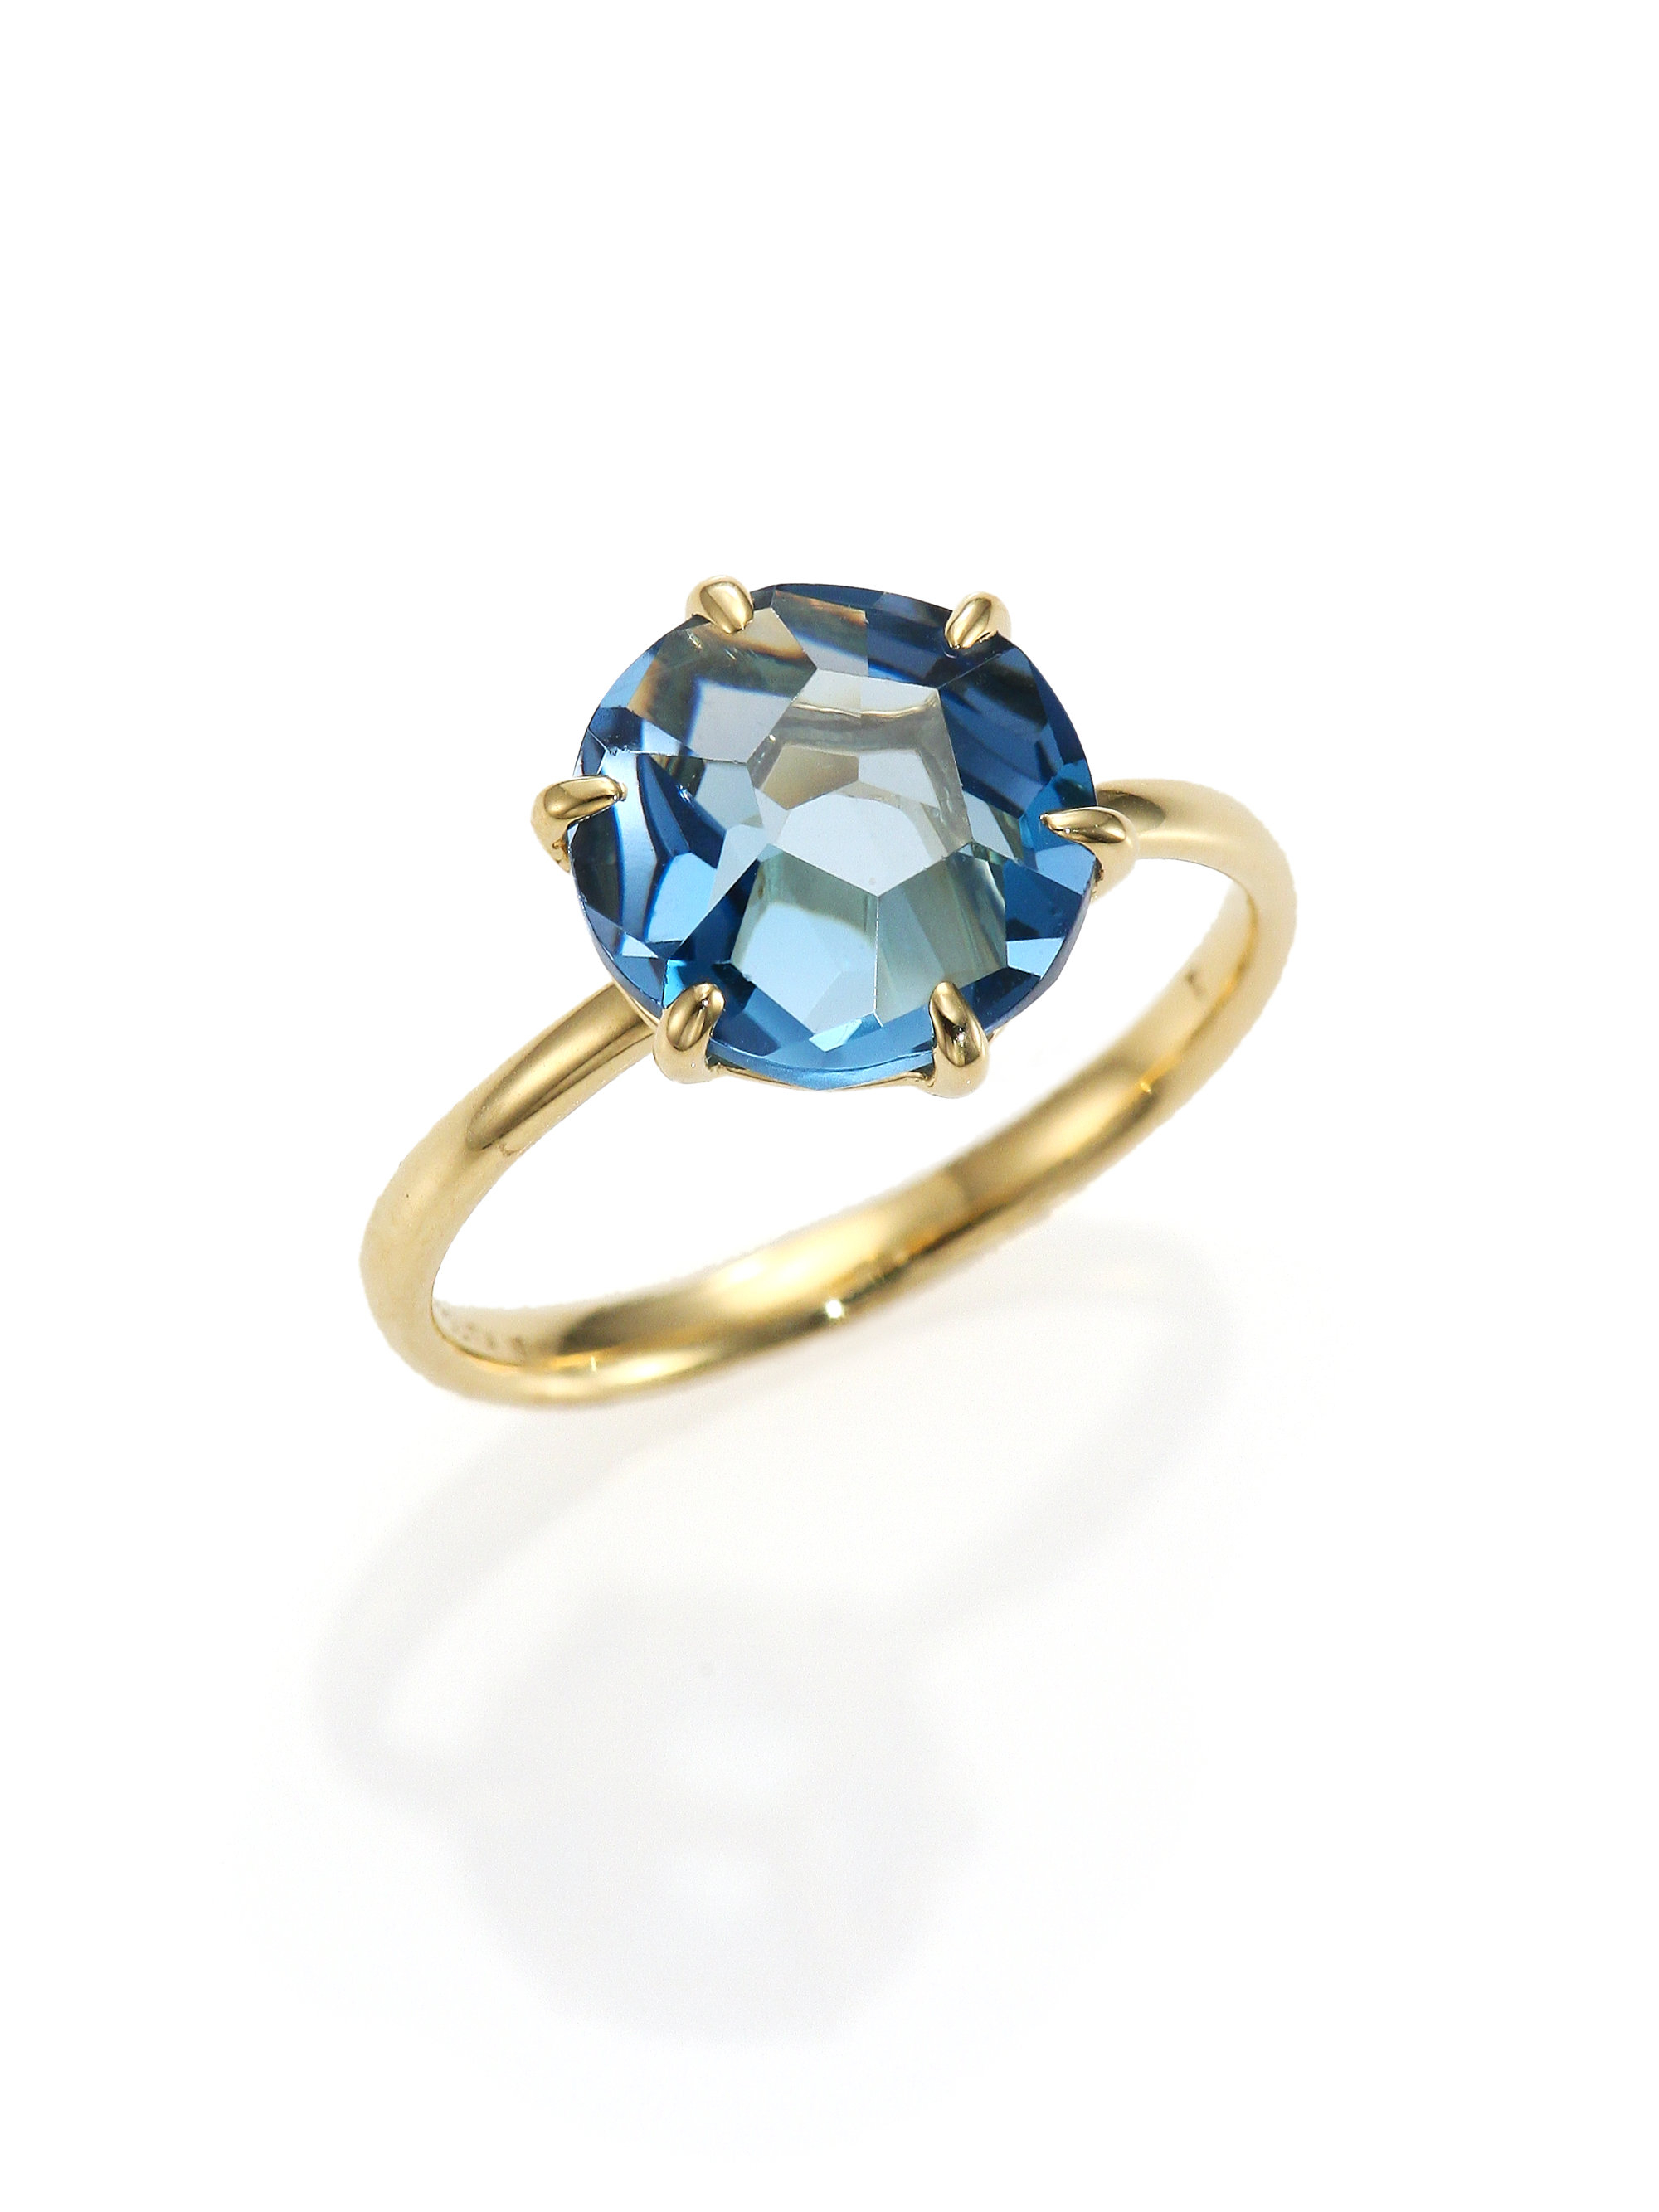 Lyst - Ippolita Rock Candy London Blue Topaz & 18k Yellow ...